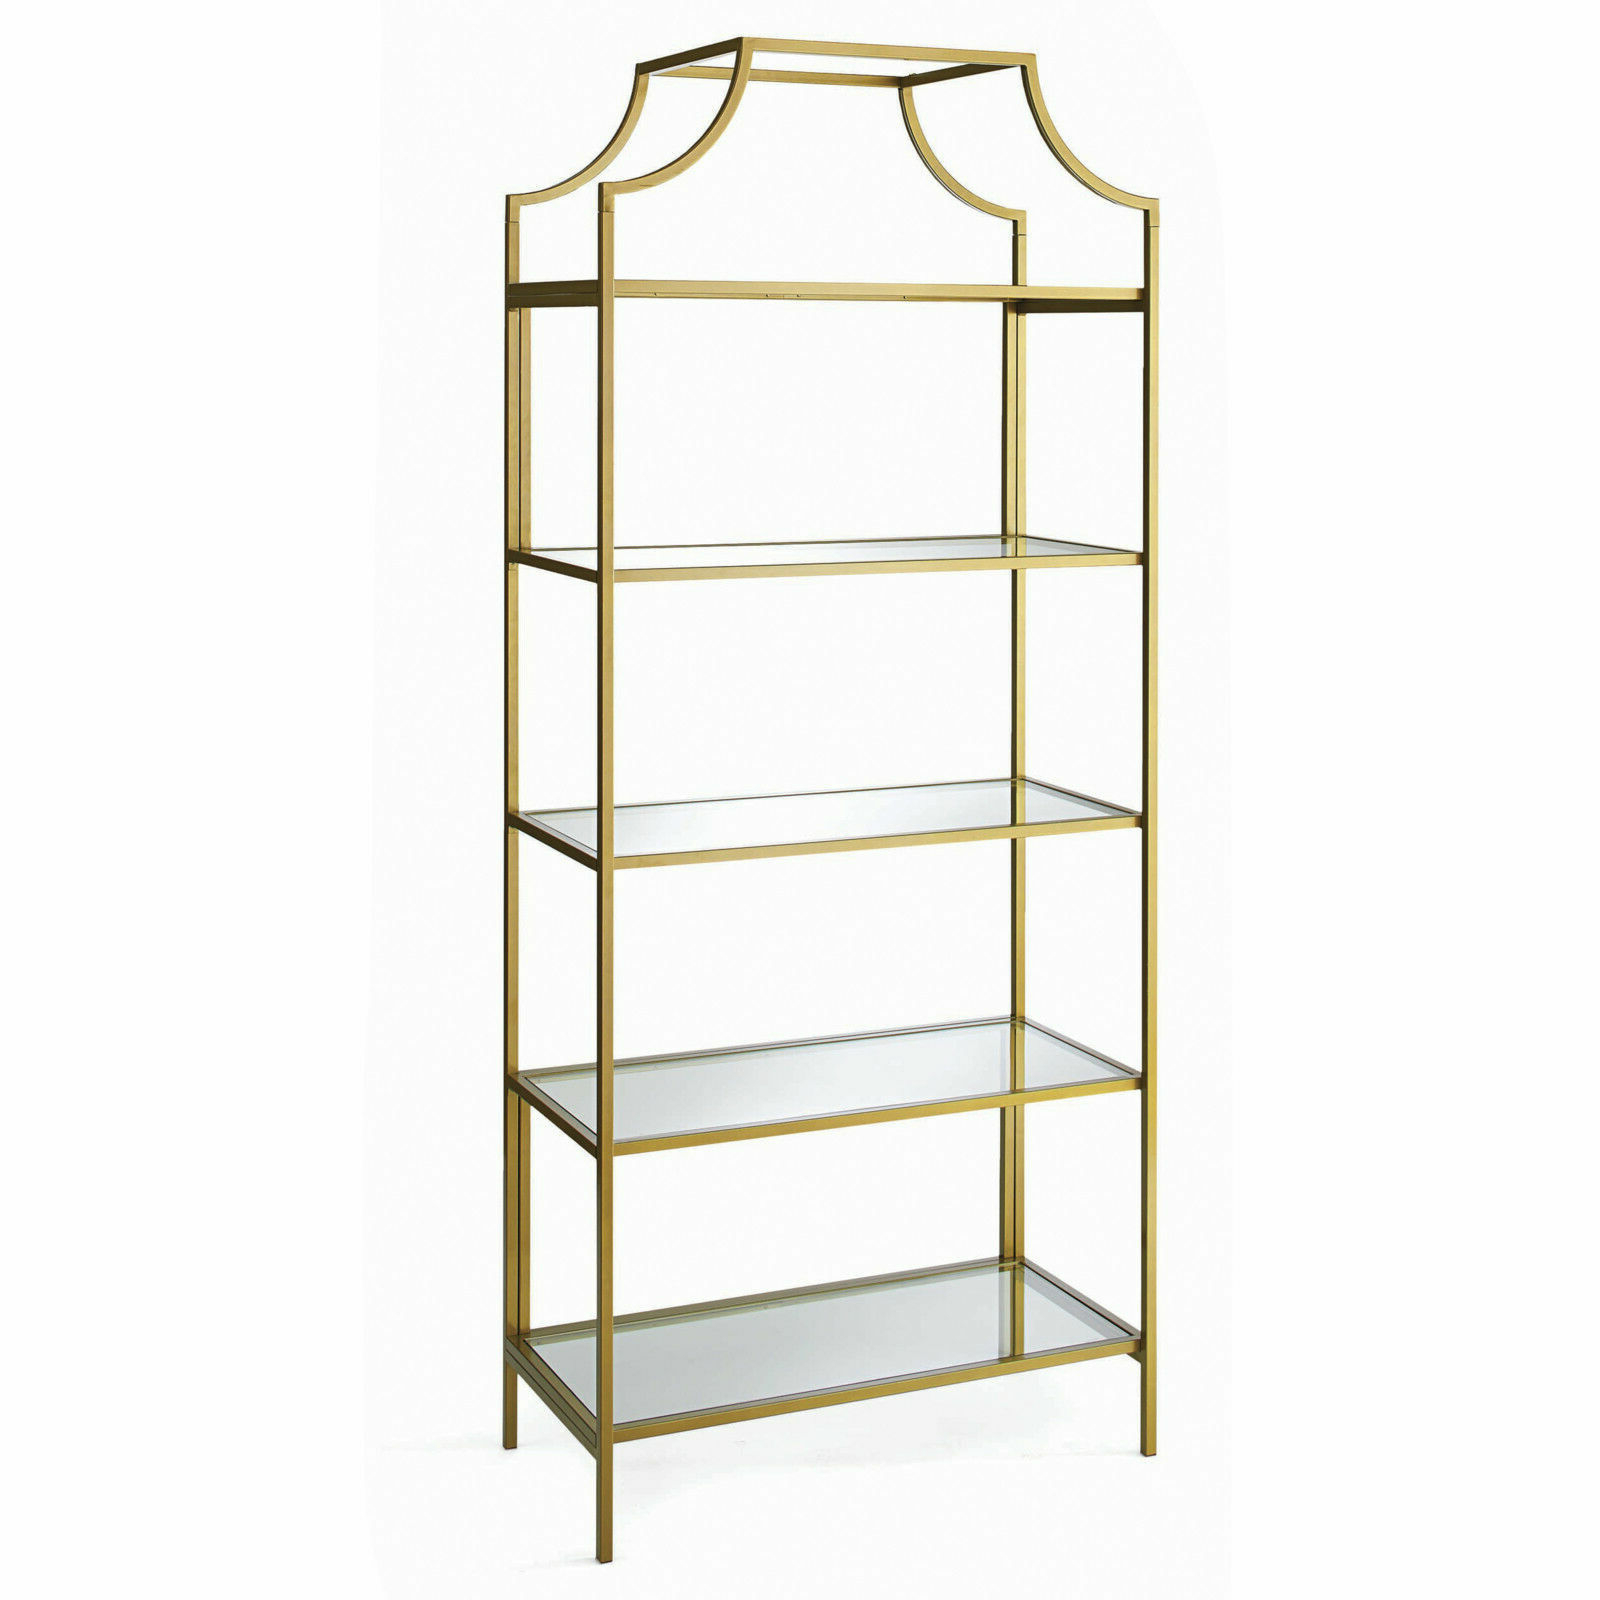 """New Better Homes & Gardens 71"""" Nola 5 Tier Etagere Bookcase Gold Finish 5  Shelf Intended For Most Recently Released Beckwith Etagere Bookcases (View 16 of 20)"""